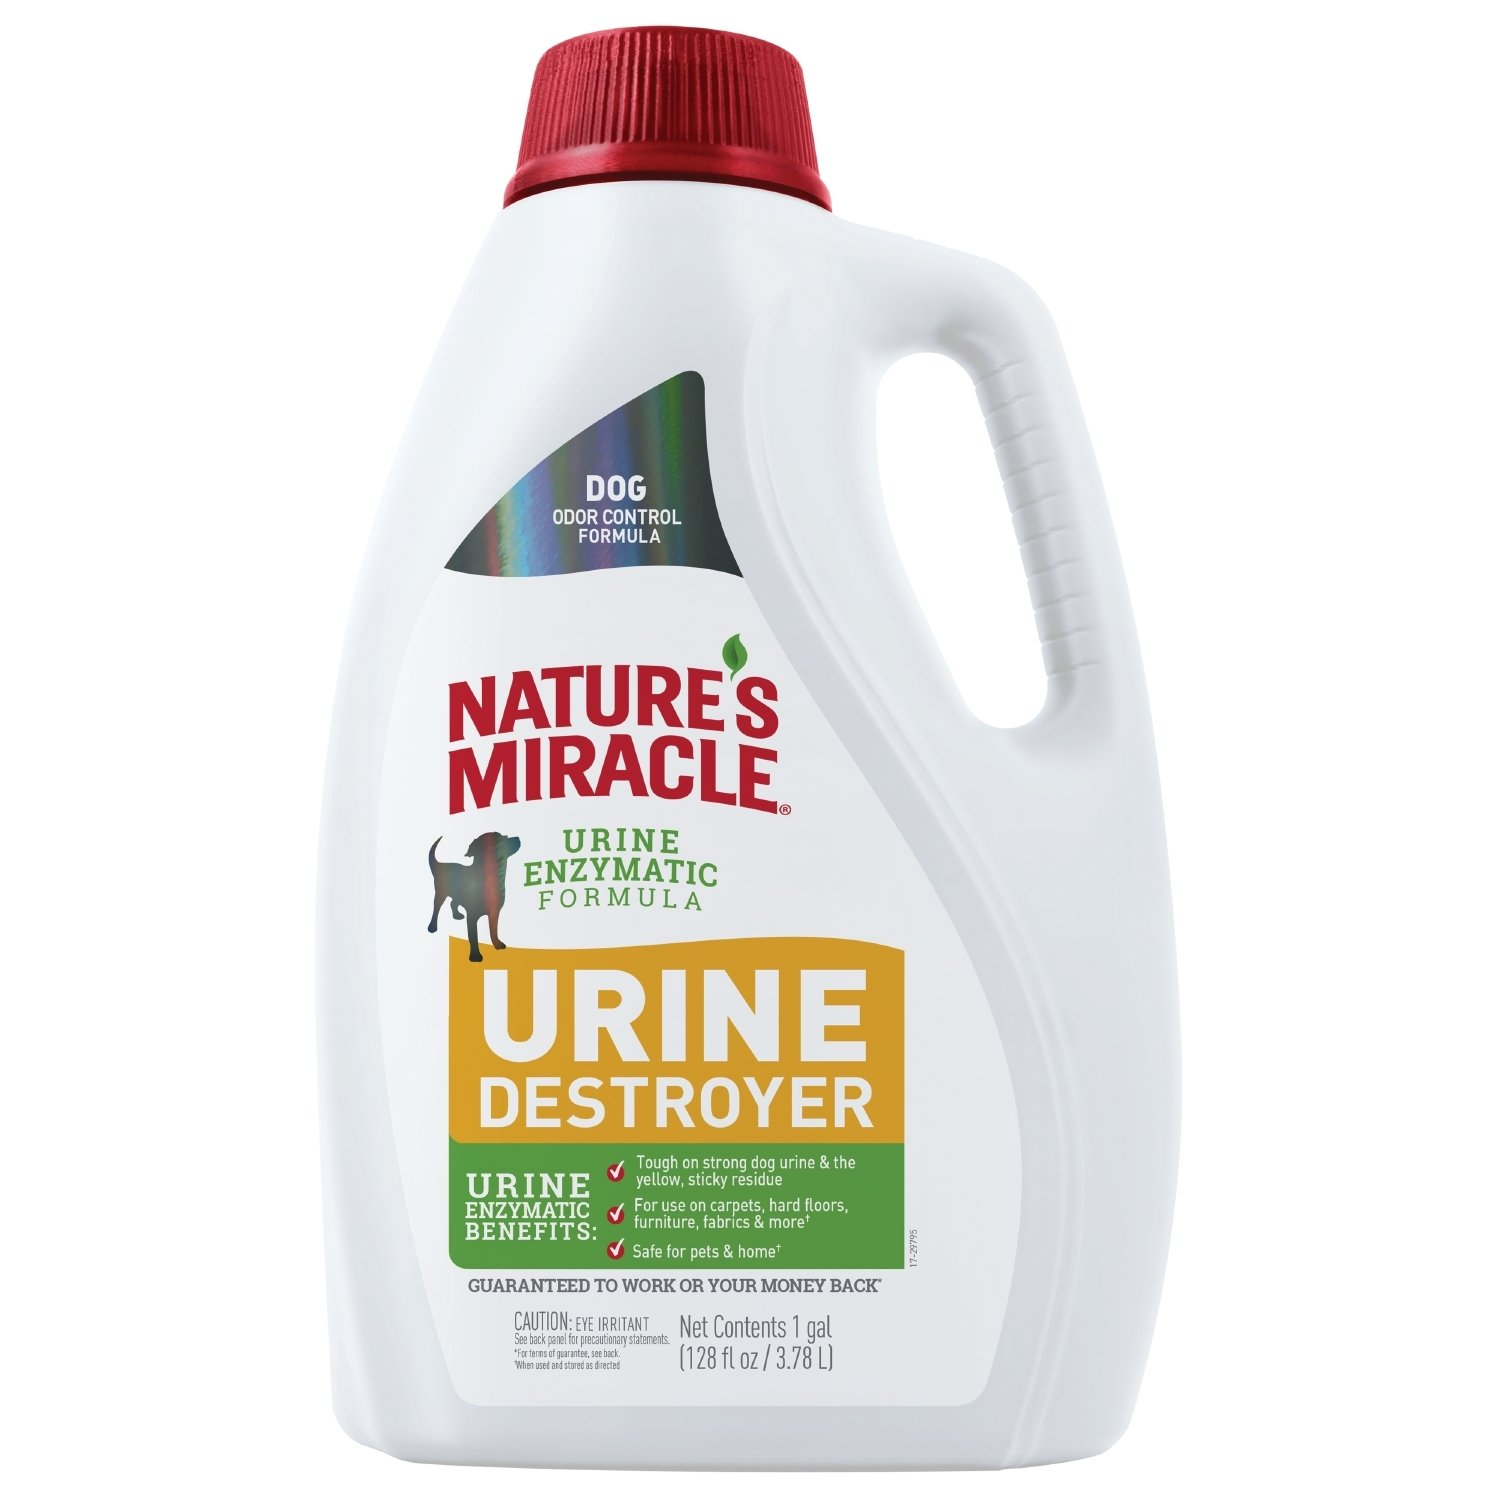 Nature's Miracle Dog Urine Destroyer